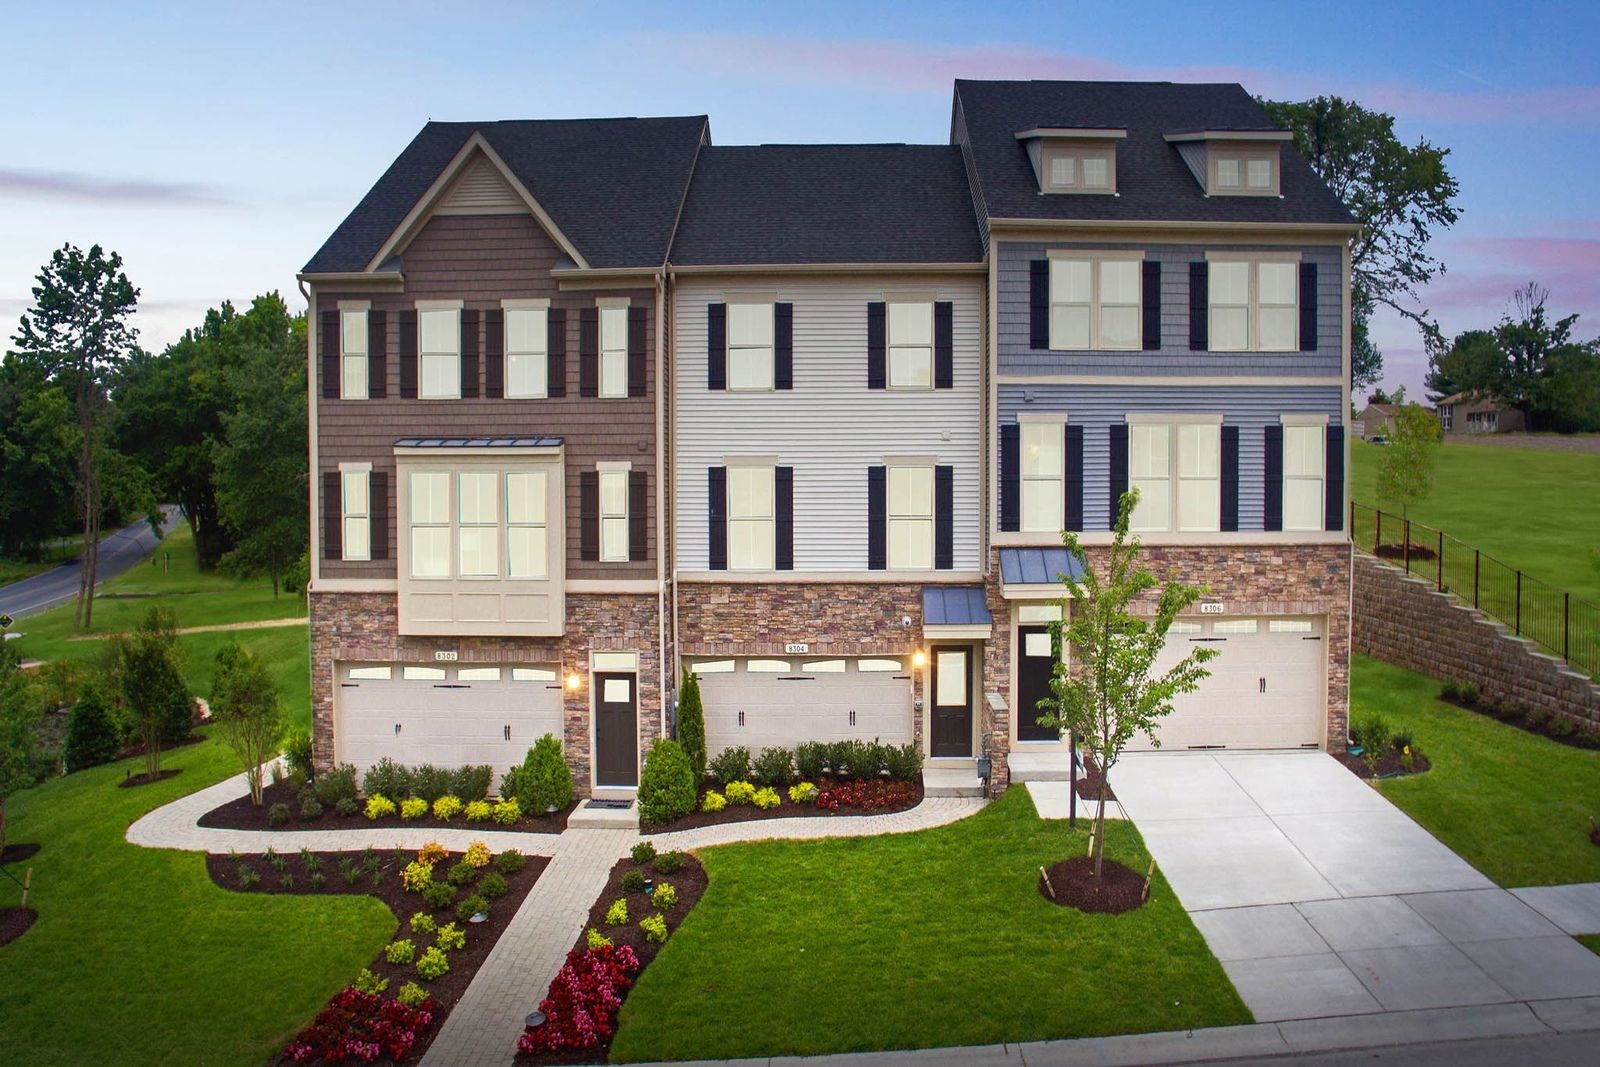 'Unique la famille' building or community at 'Pondview Townhomes 8302 Pondview Drive Millersville, Maryland 21108 United States'